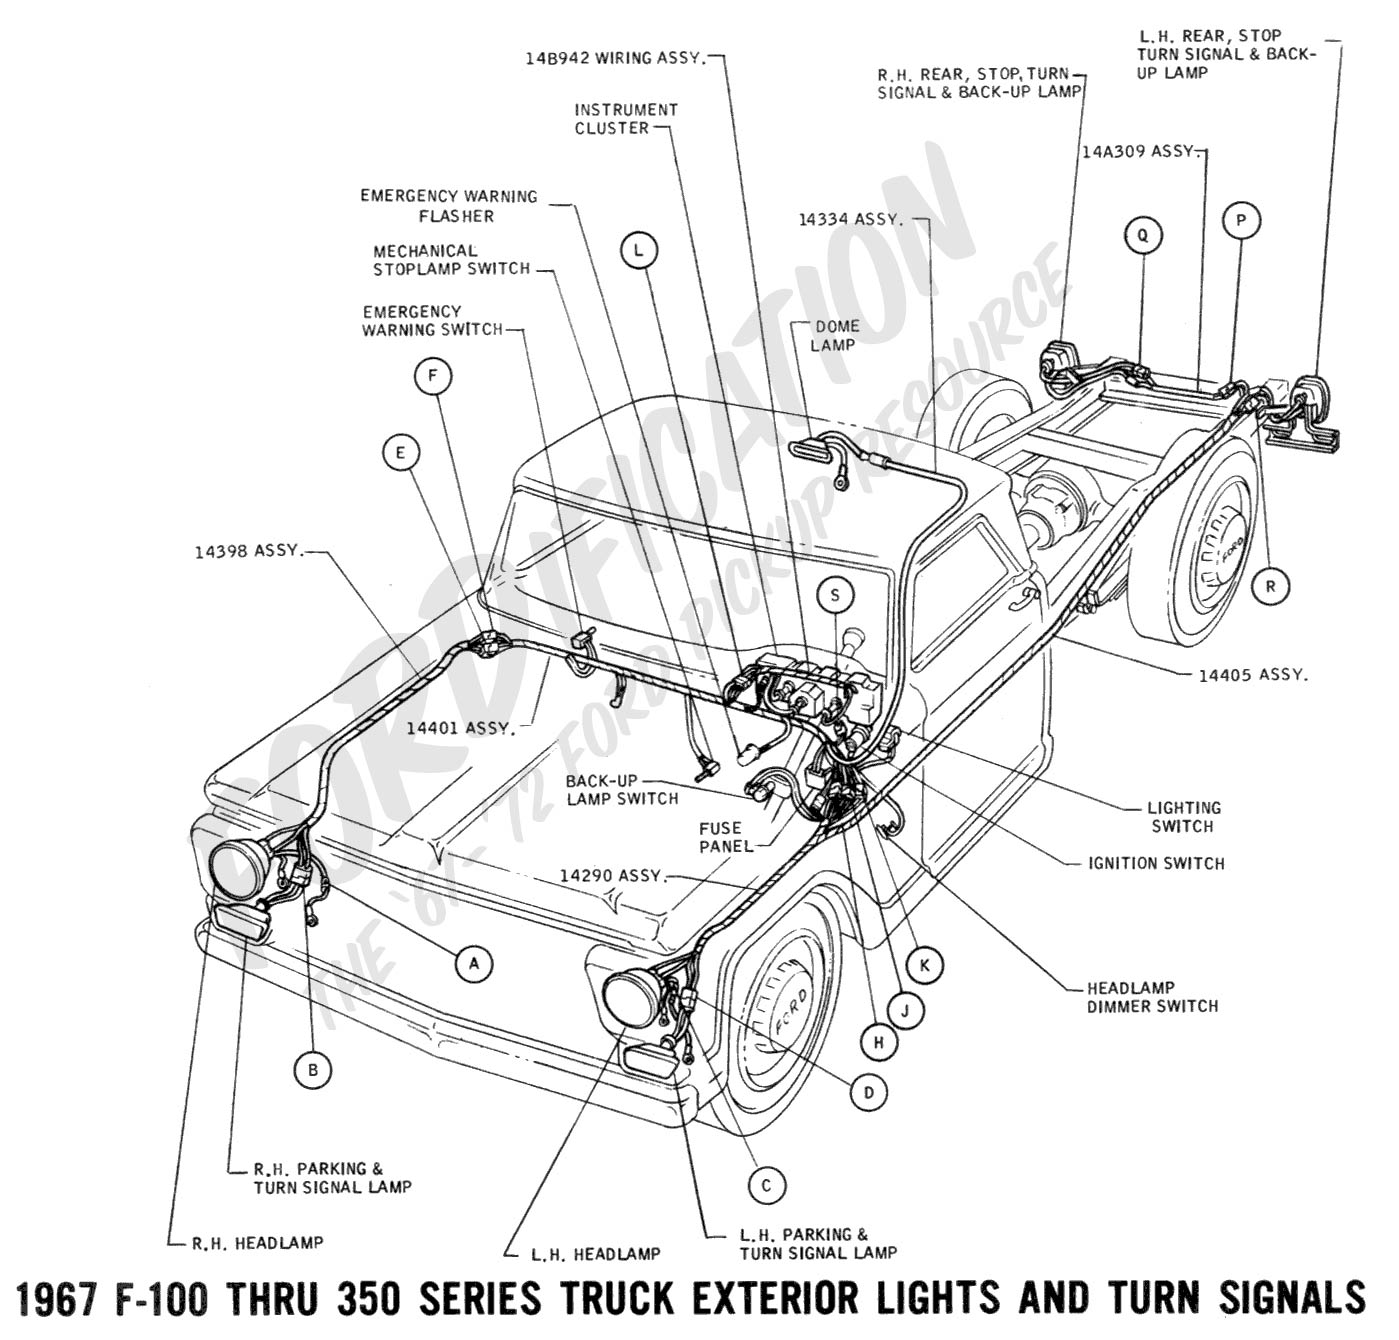 2001 Ford Ranger Wiring Harness | Wiring Diagram  Ford Ranger Wiring Harness on 2001 jeep grand cherokee wiring harness, 2004 ford freestar wiring harness, 2001 ford ranger hood, 2003 ford windstar wiring harness, 2002 ford explorer wiring harness, 2001 ford ranger sensors, 2001 ford ranger dash panel, 1999 ford mustang wiring harness, 2001 ford ranger fuel pressure regulator, 2001 ford ranger coil, 2001 ford ranger carburetor, universal ford wiring harness, 2001 mitsubishi eclipse wiring harness, 2001 lincoln ls wiring harness, 2004 ford mustang wiring harness, 2001 ford ranger timing cover, 2005 ford freestar wiring harness, 2006 ford mustang wiring harness, 2001 ford ranger fuel rail, 2001 ford ranger spark plug wires,